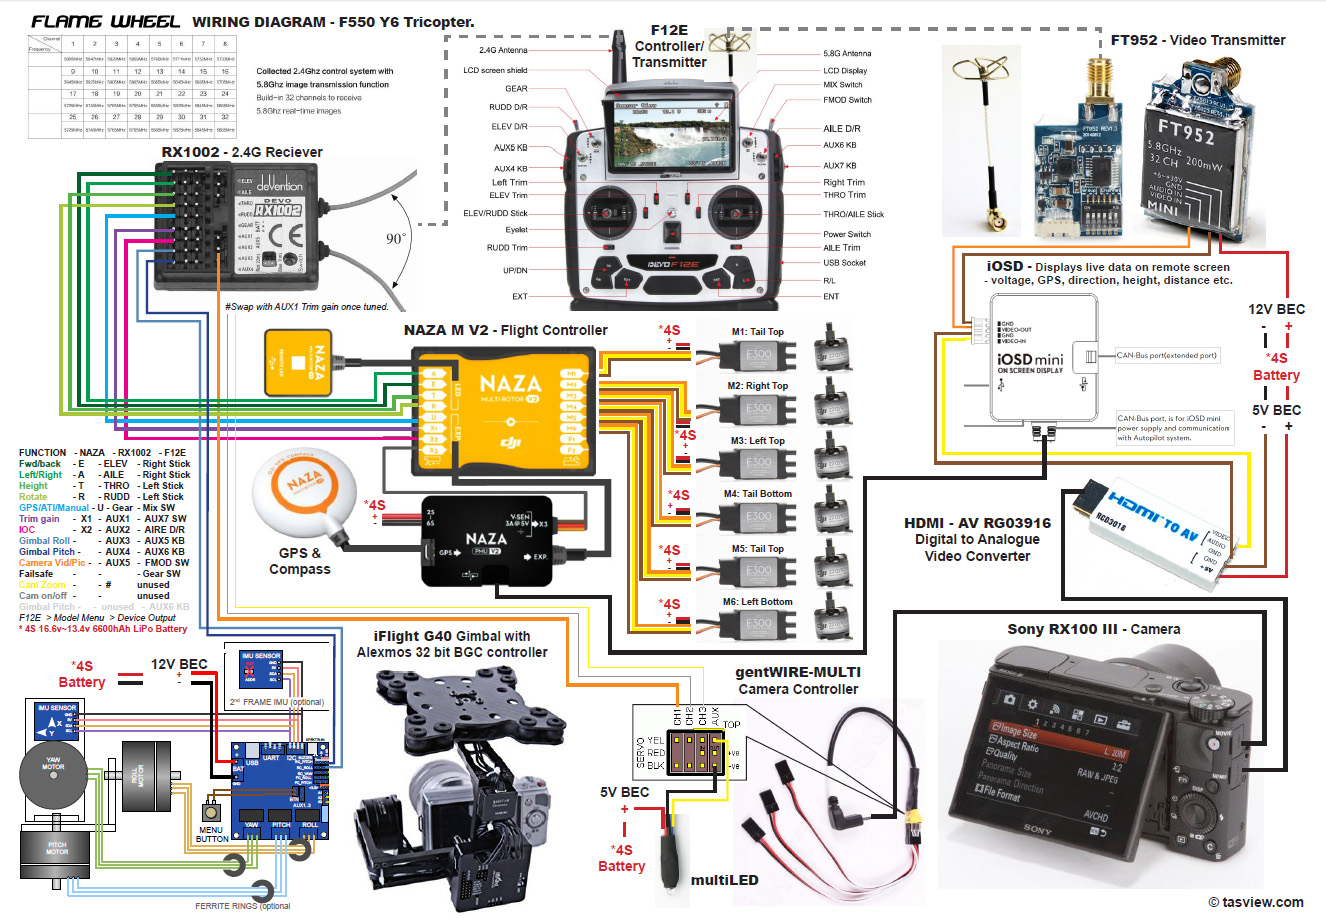 Fascinating mack mp7 wiring diagrams photos best image wire astonishing mack wiring schematic images best image wire binvm asfbconference2016 Gallery